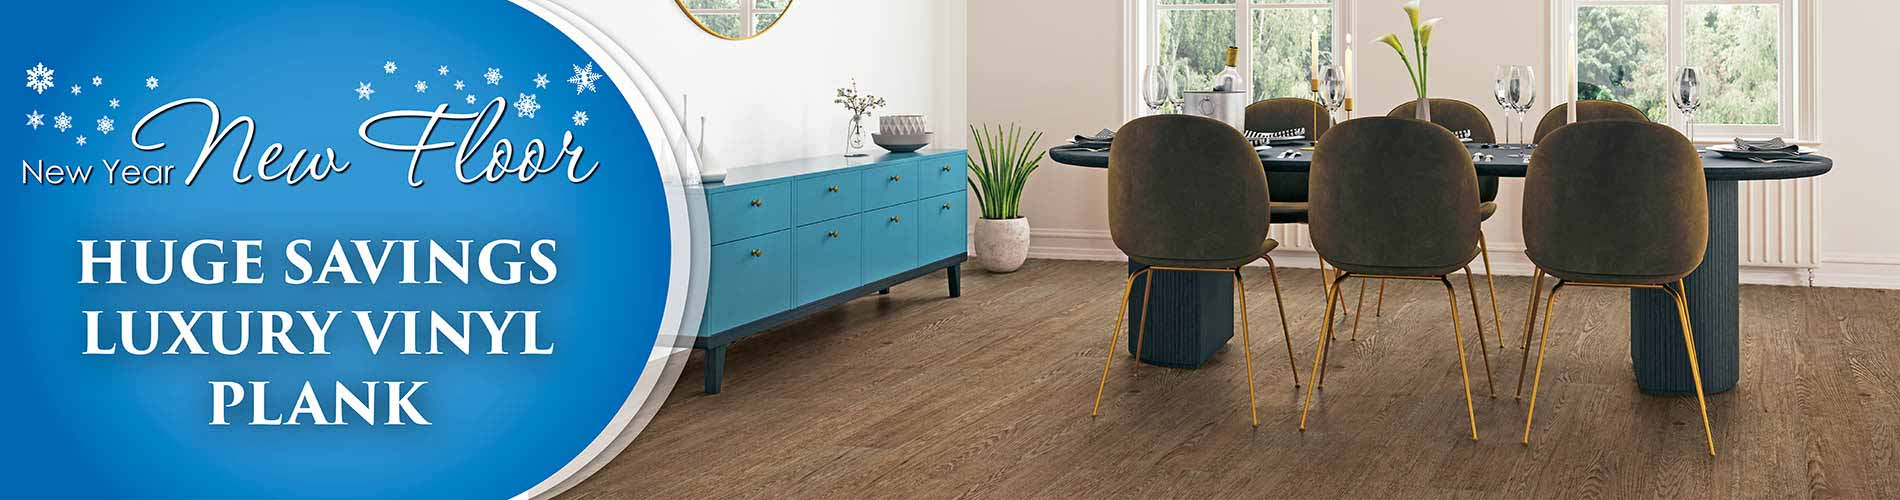 Save on Luxury Vinyl Plank during our New Year New Floor sale at Murley's Floor Covering in Kennewick